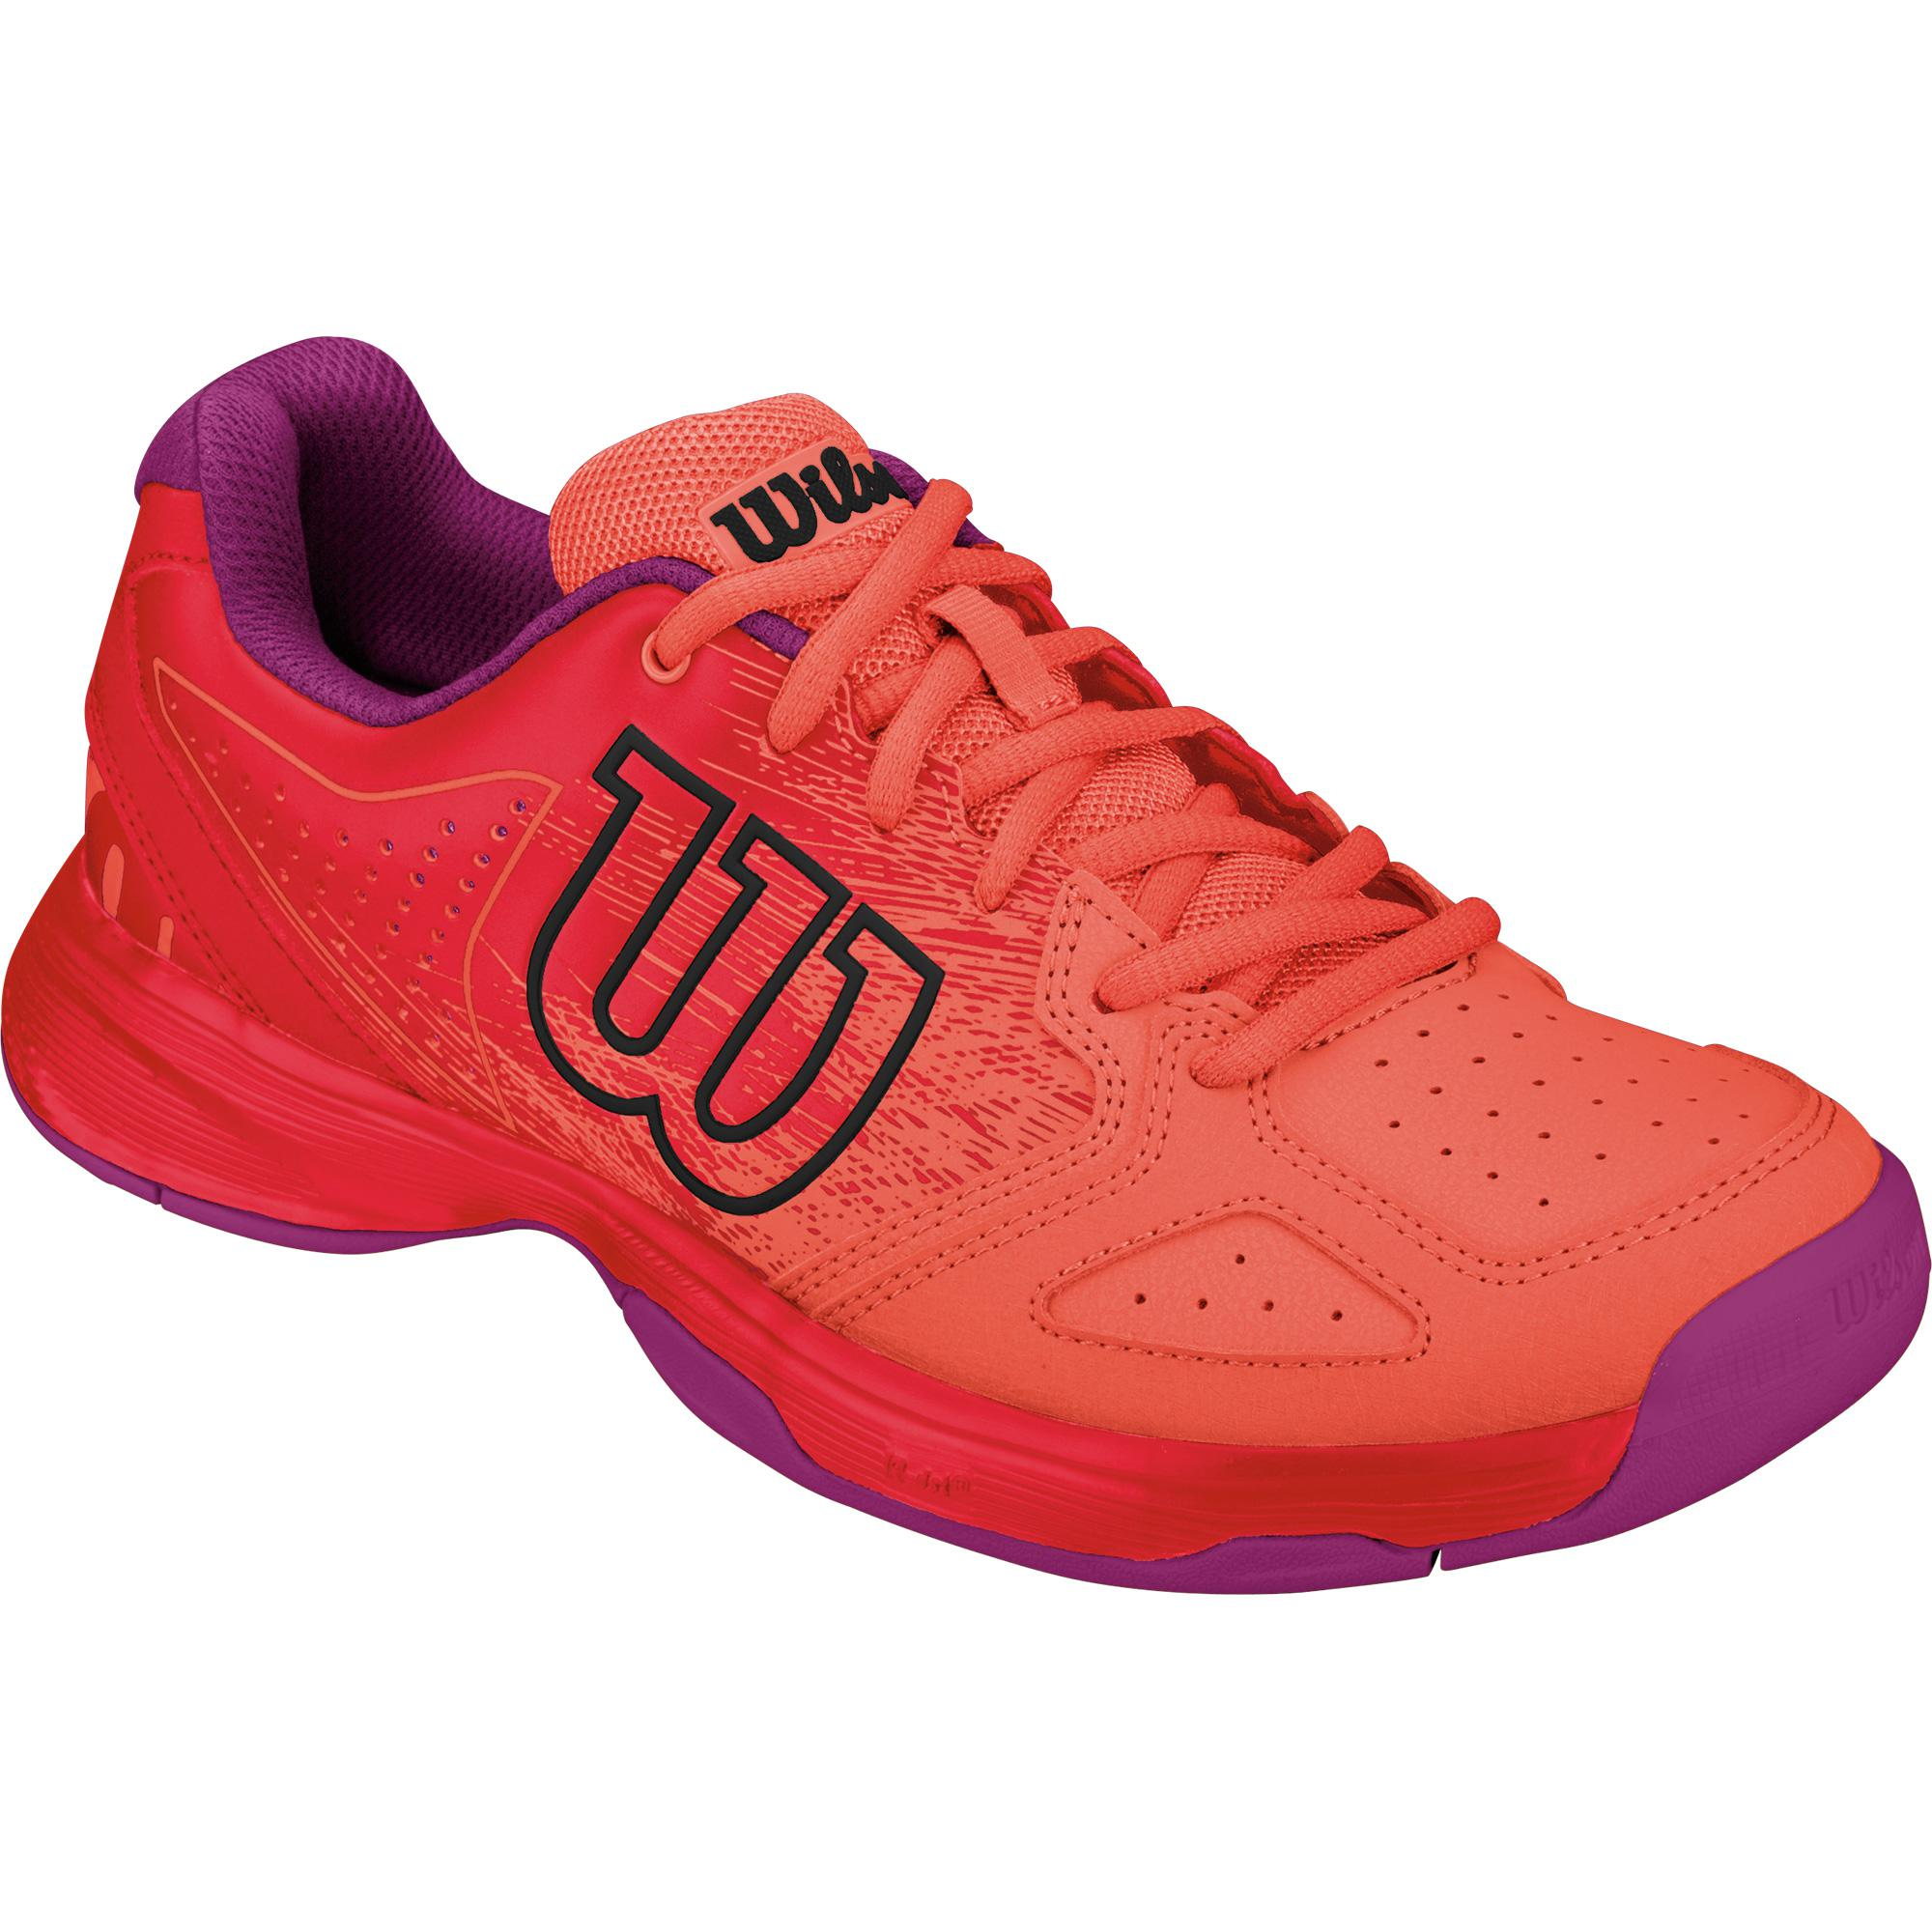 wilson kaos comp tennis shoes coral